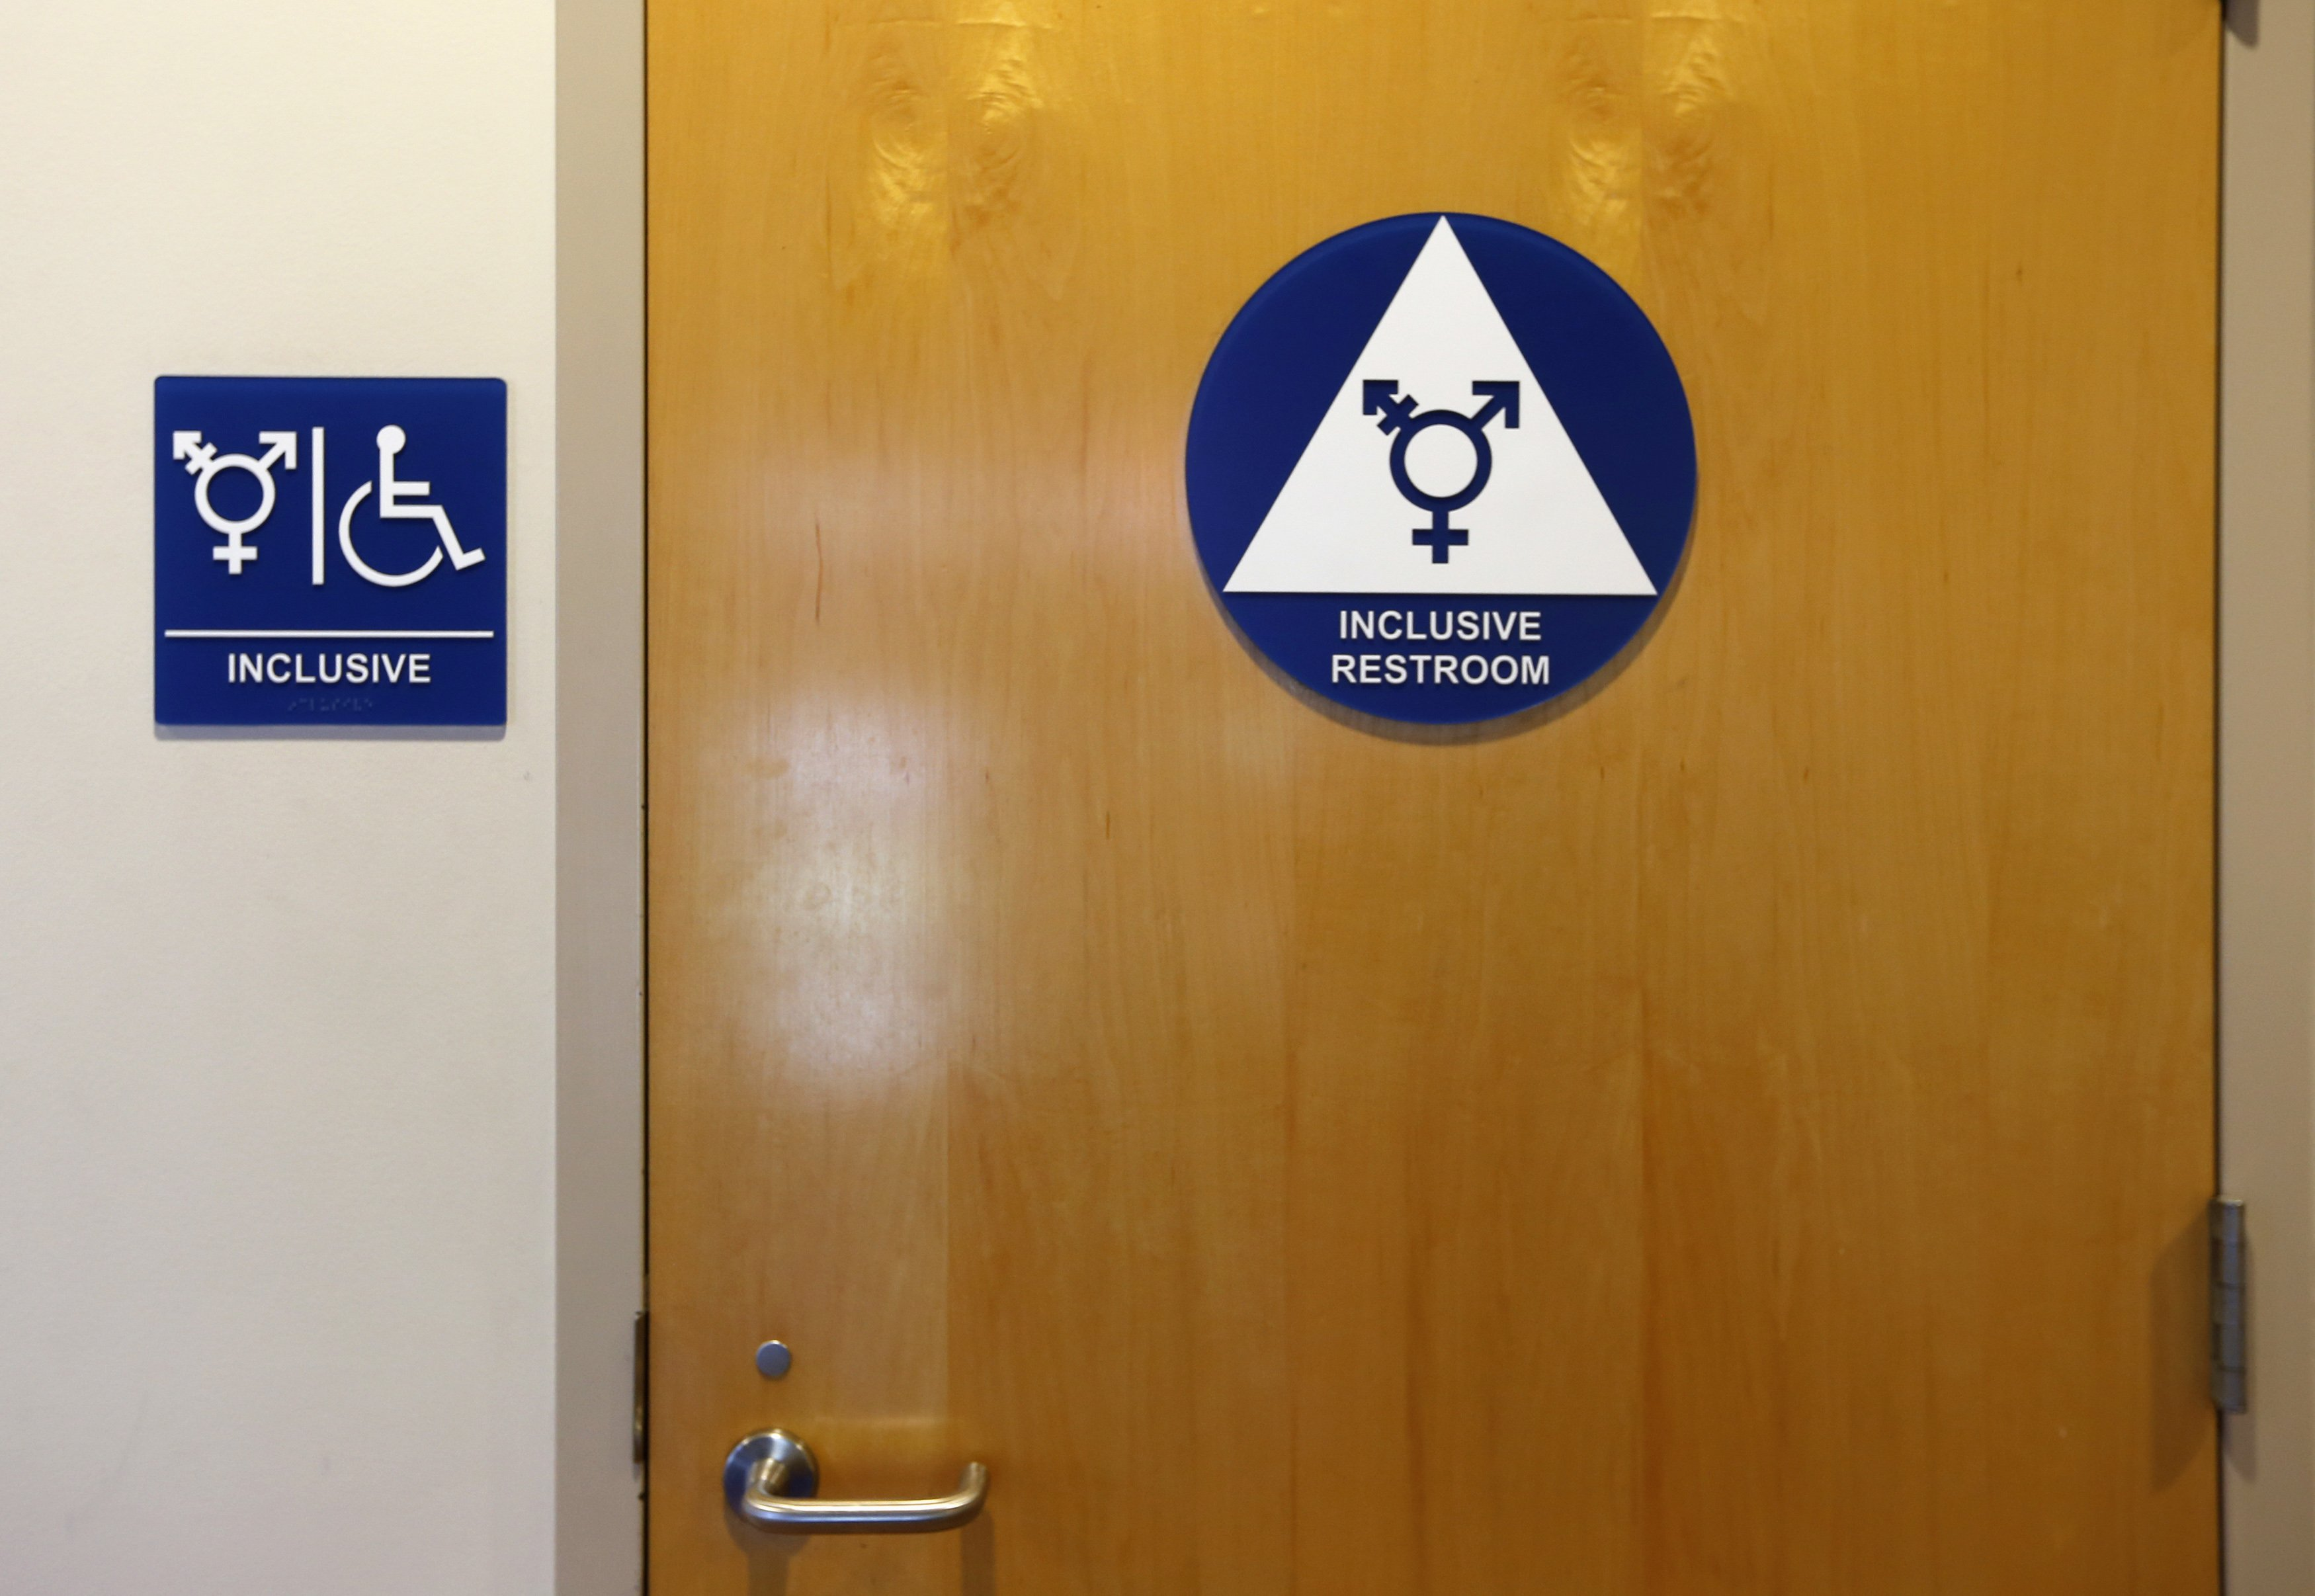 A gender neutral bathroom is seen at the University of California Irvine